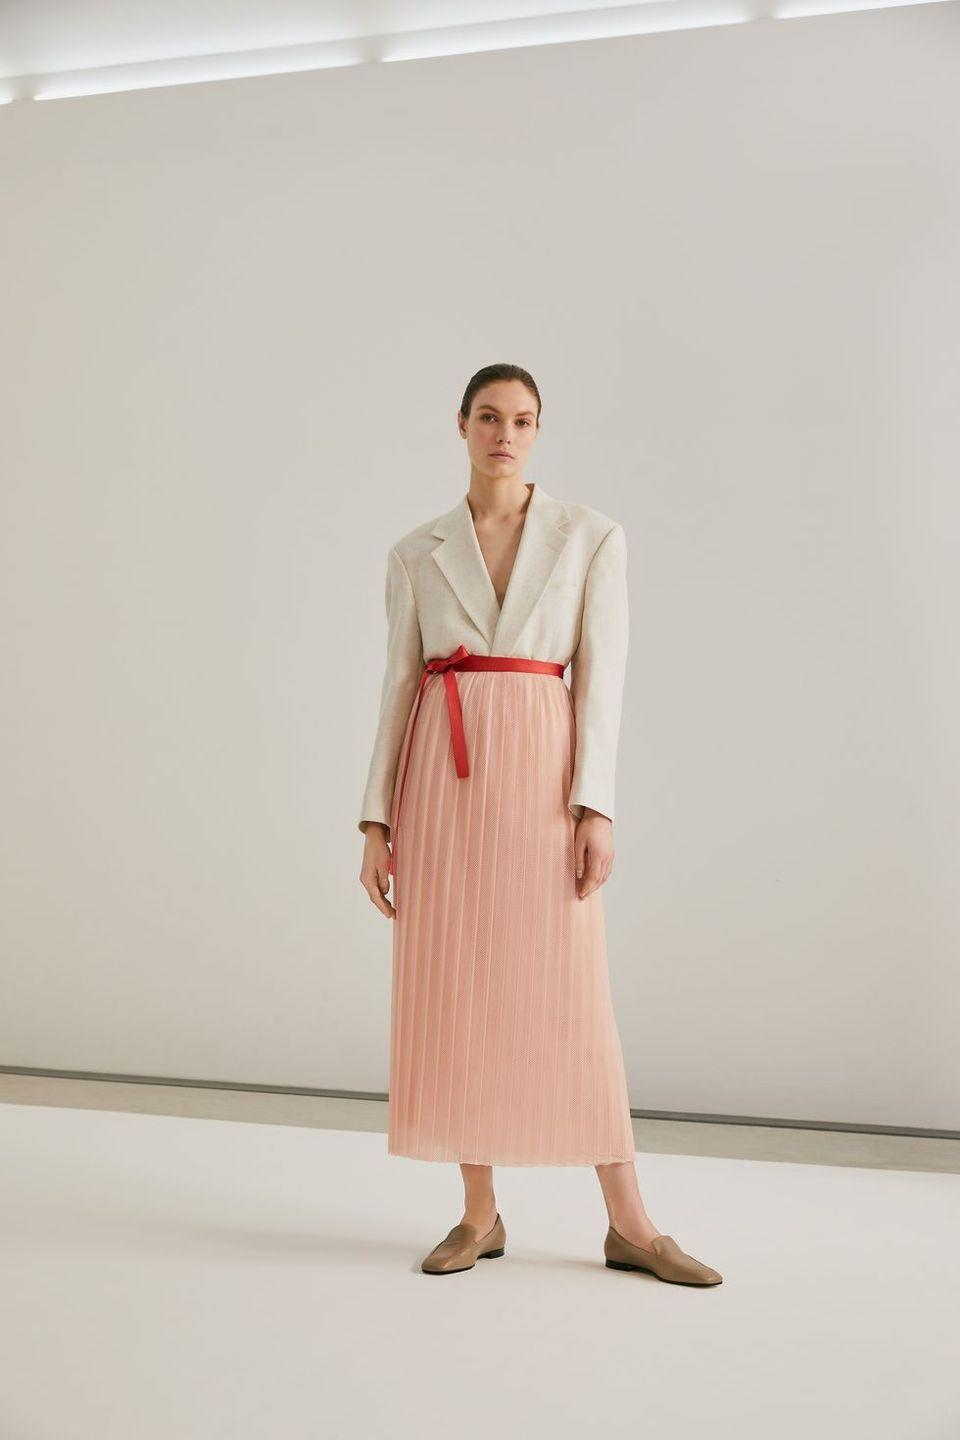 """<p>Isabelle Fox creates timeless items using traditional couture techniques, with high-quality fabric.</p><p>The brand creates bags from leftover fabrics and remains direct-to-consumer, avoiding further waste. <br></p><p><a class=""""link rapid-noclick-resp"""" href=""""https://isabellefox.com/"""" rel=""""nofollow noopener"""" target=""""_blank"""" data-ylk=""""slk:SHOP ISABELLE FOX NOW"""">SHOP ISABELLE FOX NOW </a></p>"""